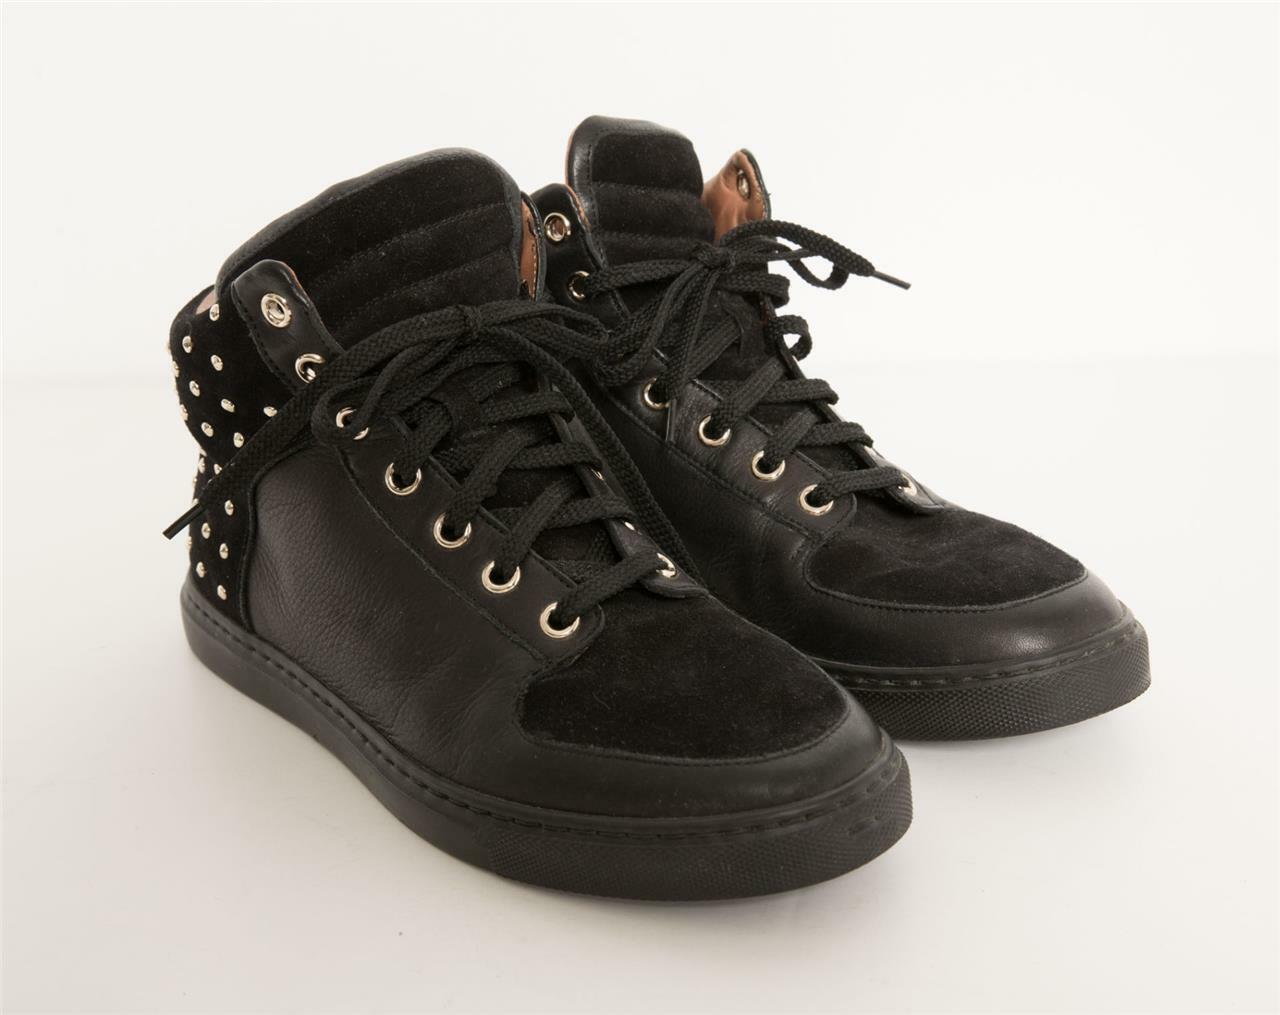 MULBERRY Donna Nero Pelle + Suede Gold Studded Lace-Up Lace-Up Lace-Up Hi-Top  7-37 96feac